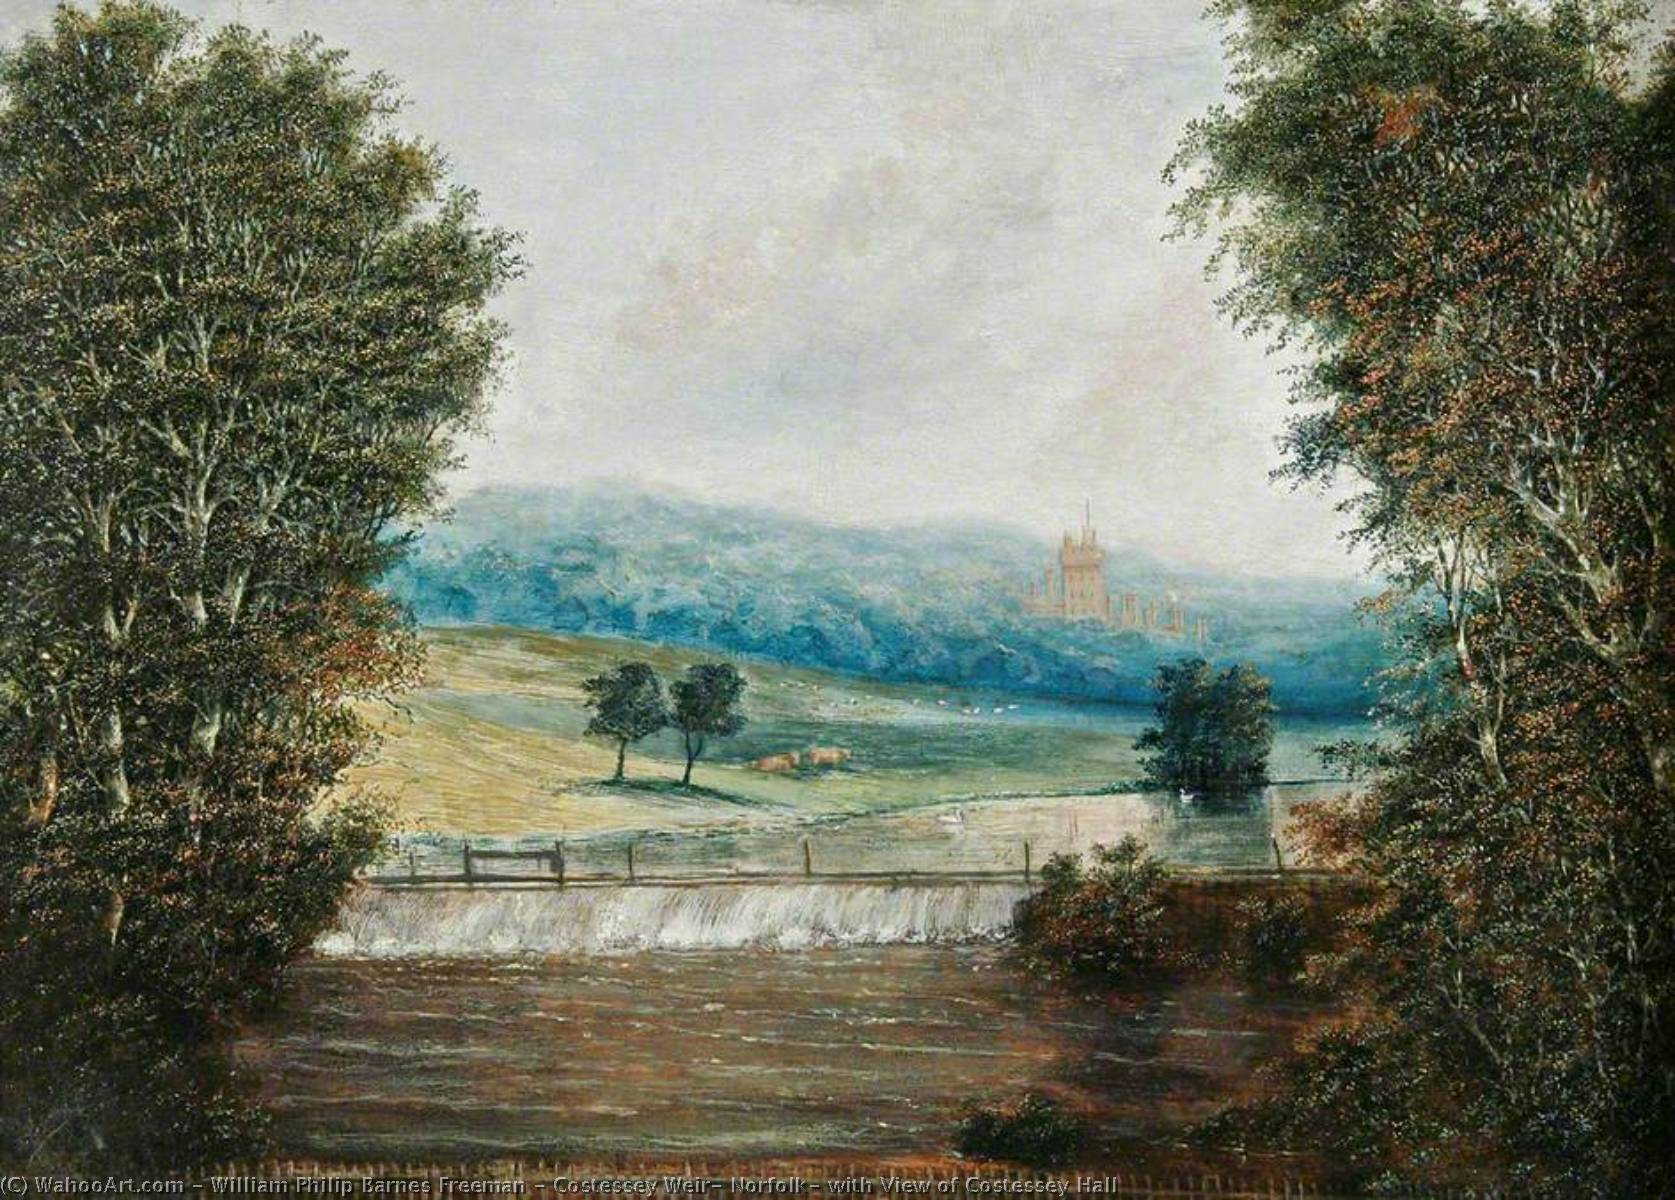 Costessey Weir, Norfolk, with View of Costessey Hall, Oil by William Philip Barnes Freeman